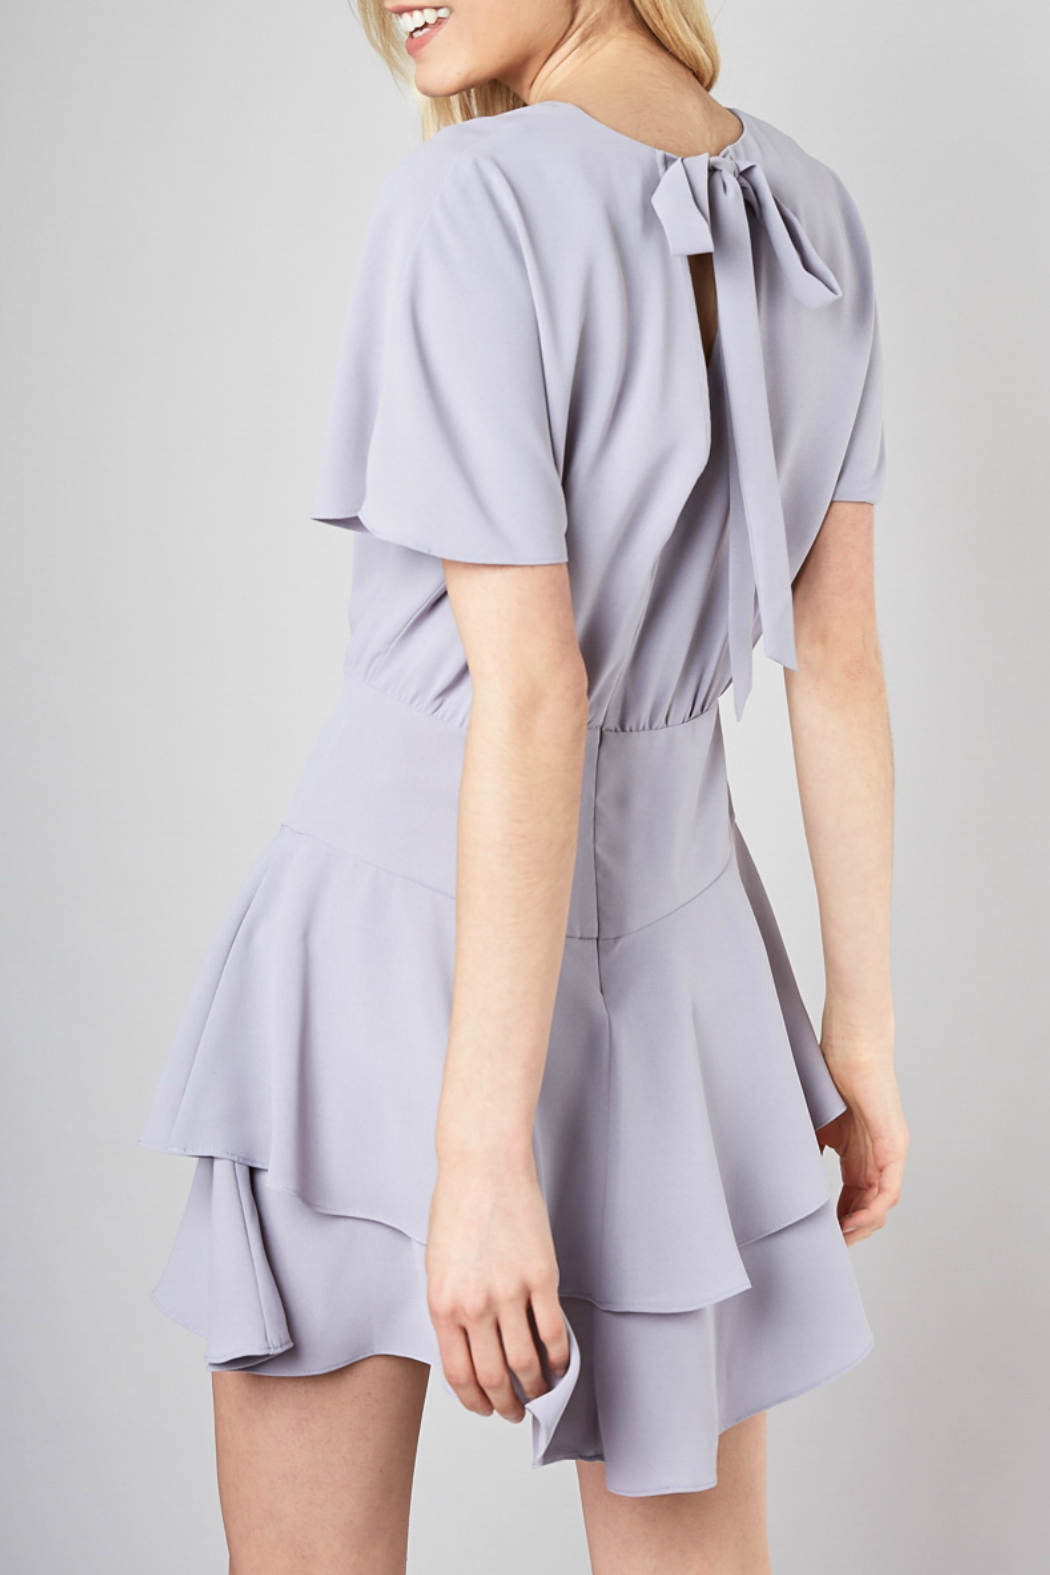 Do & Be Ribbon tie fit and flare dress - Main Image